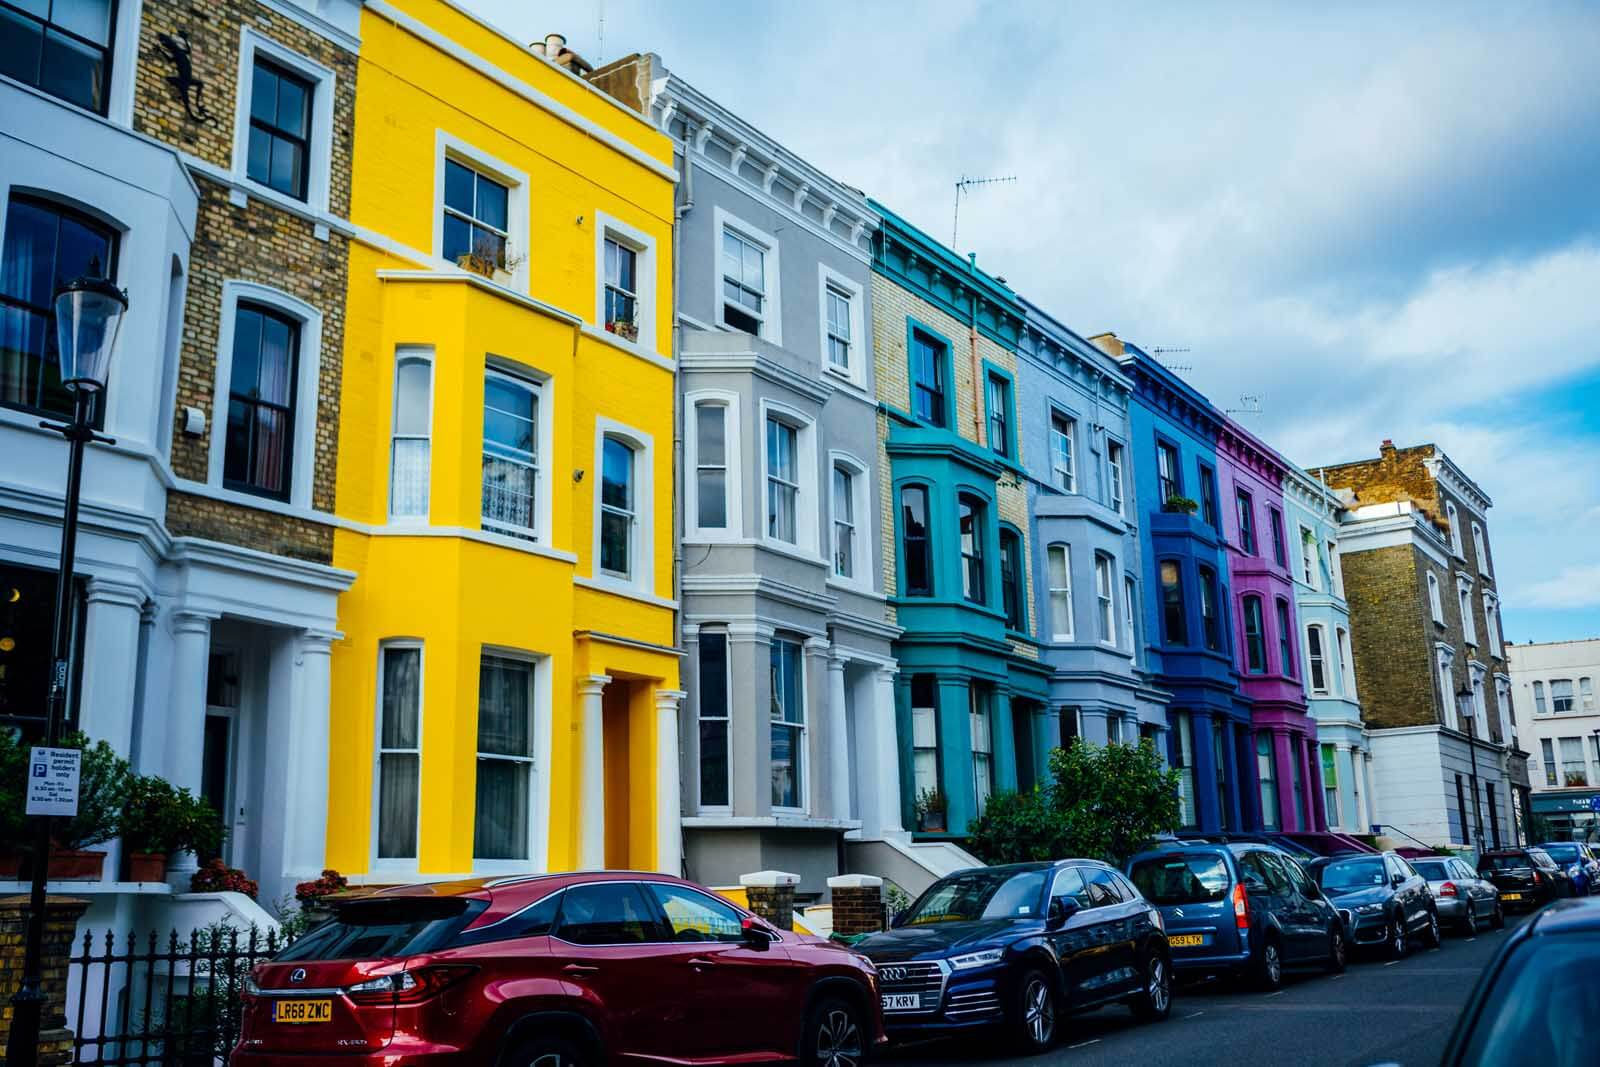 Colorful homes on Lancaster Road in Notting Hill